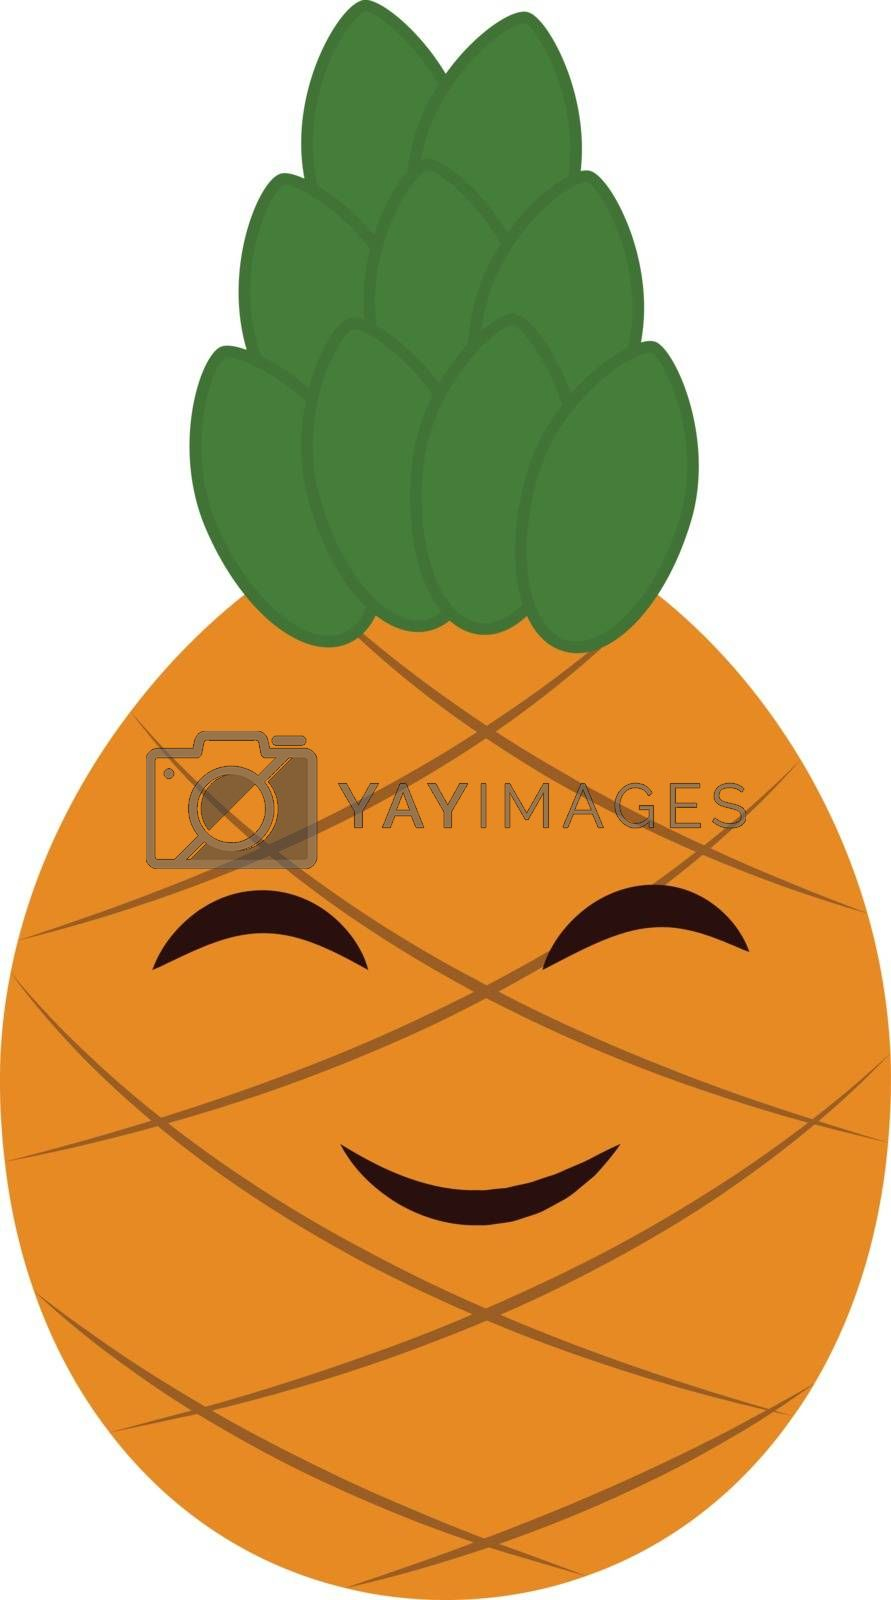 Royalty free image of Emoji cartoon smiling pineapple vector or color illustration by Morphart